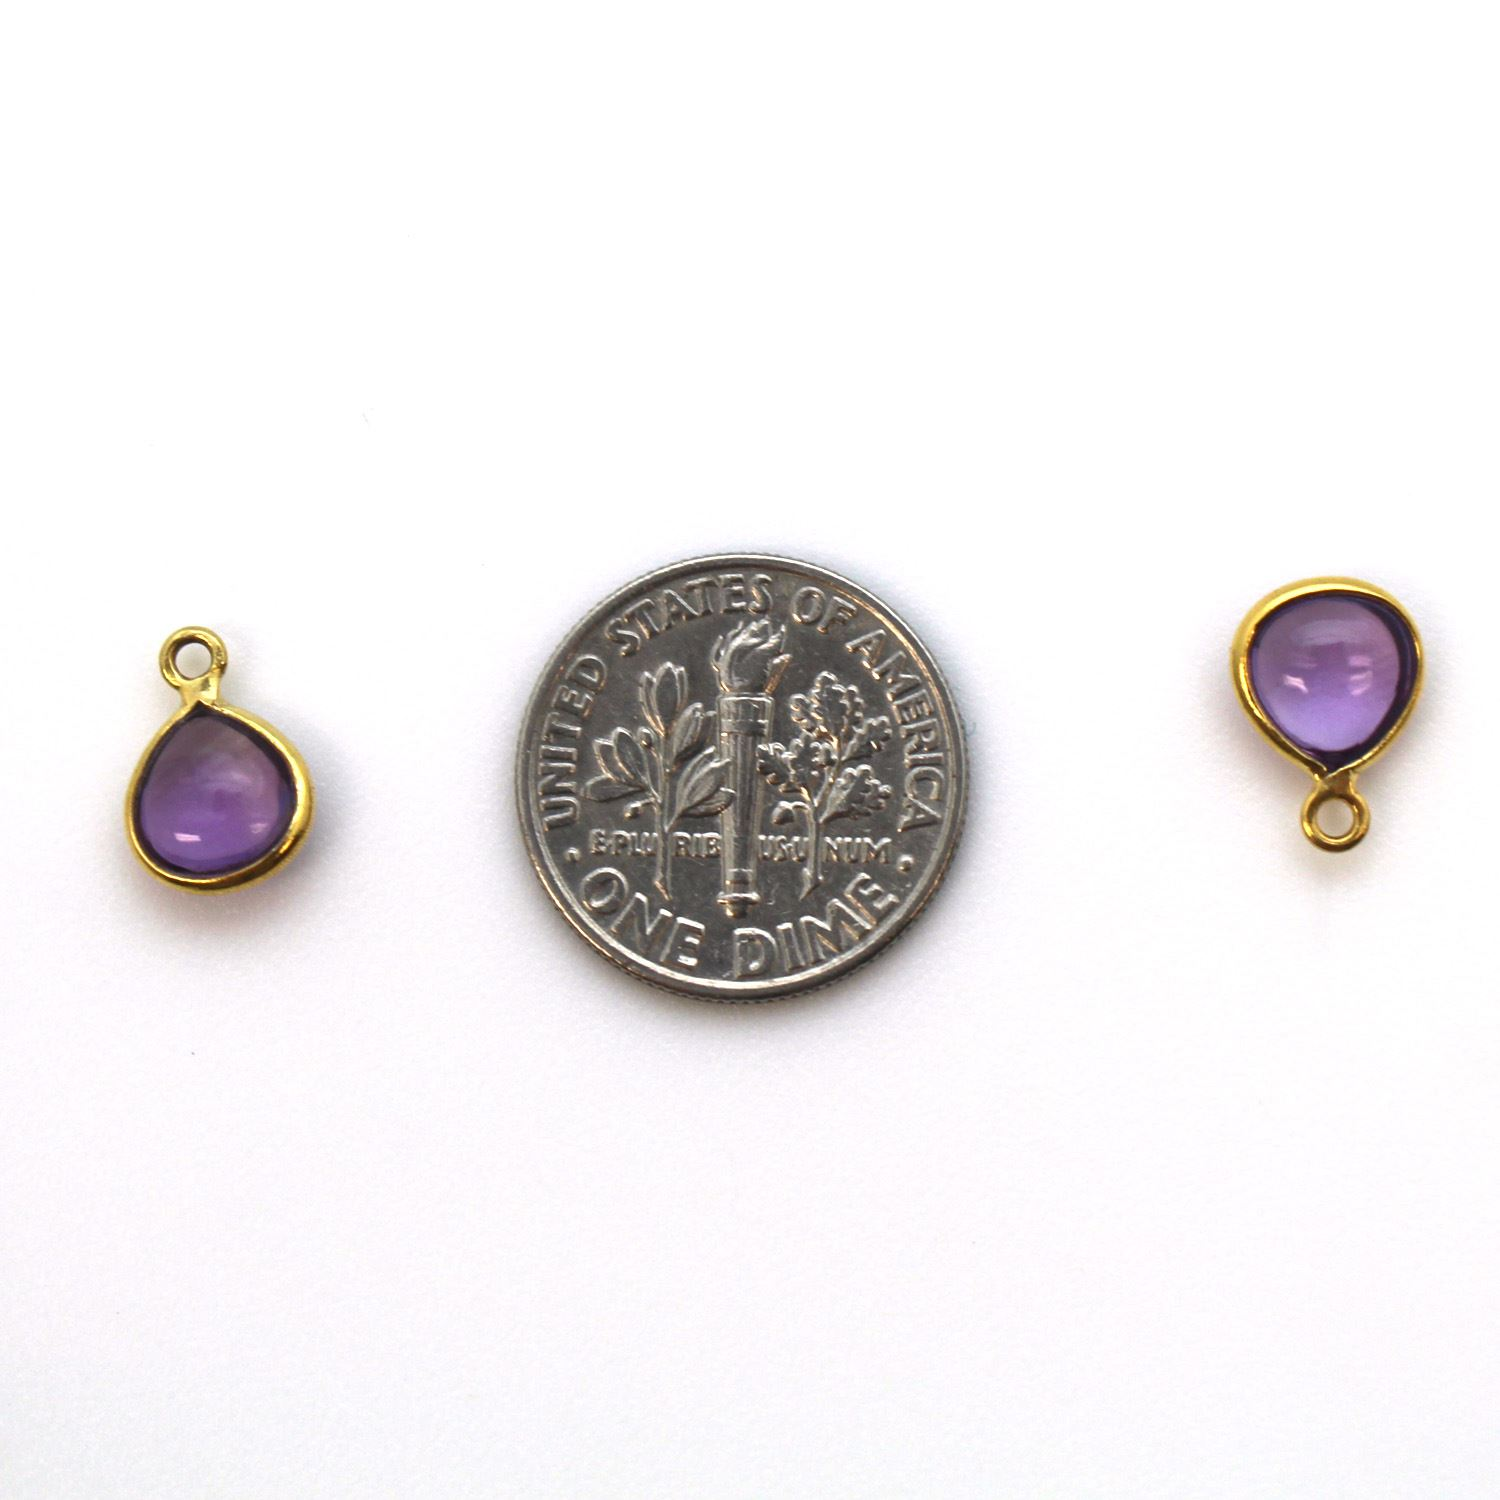 Bezel Charm Pendant - Gold Plated Sterling Silver Charm - Natural Amethyst - Tiny Heart Shape -7mm